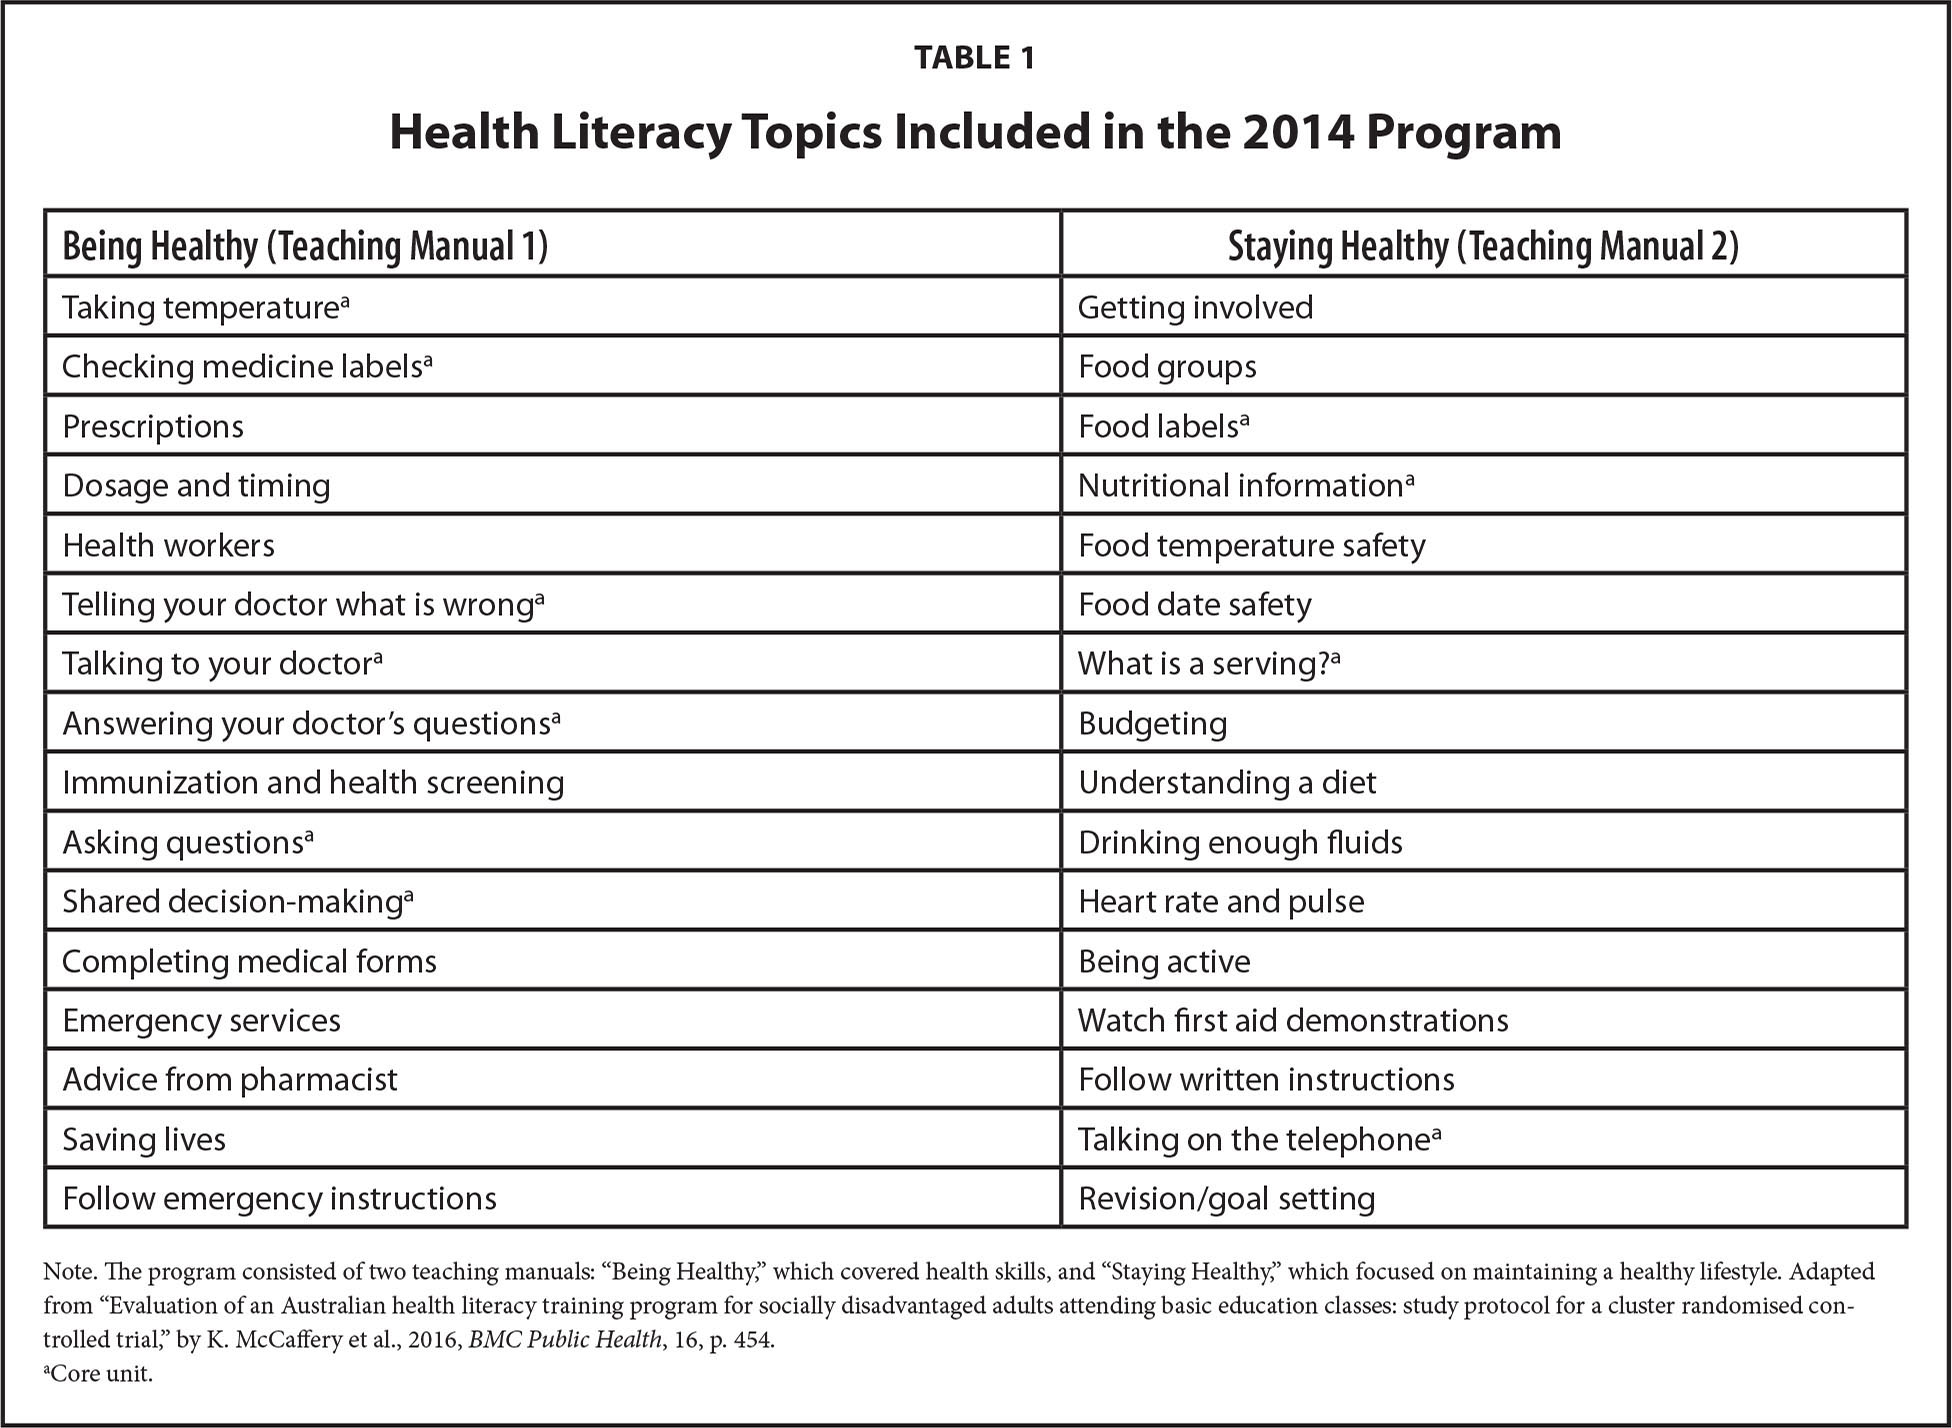 Health Literacy Topics Included in the 2014 Program